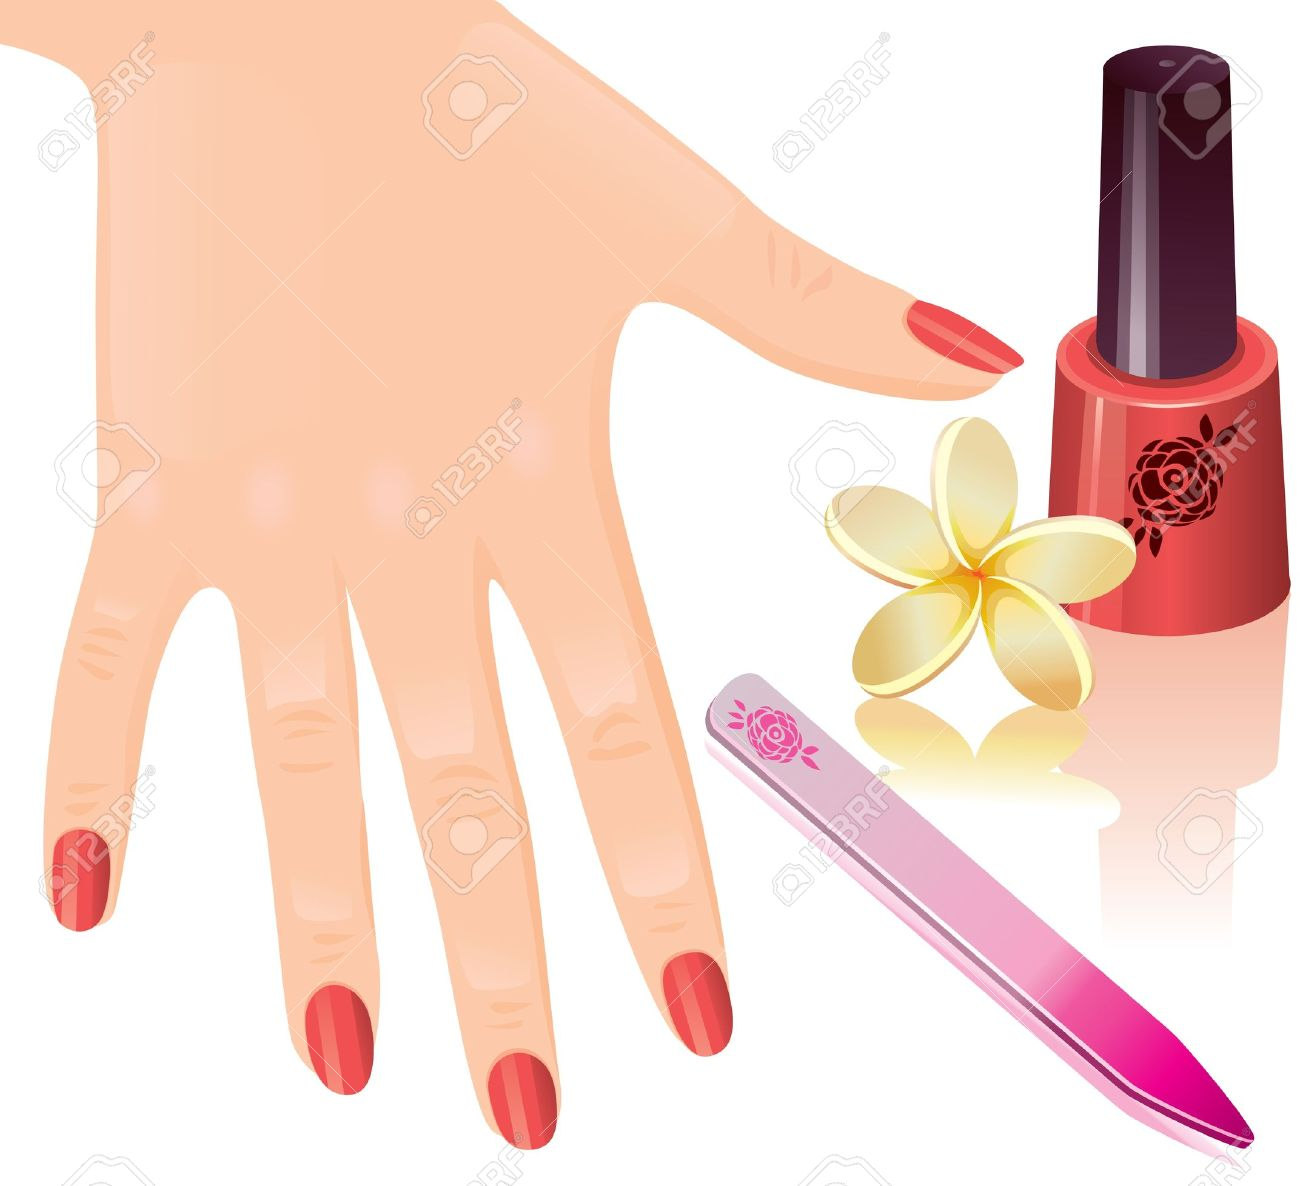 Manicure hand clipart.